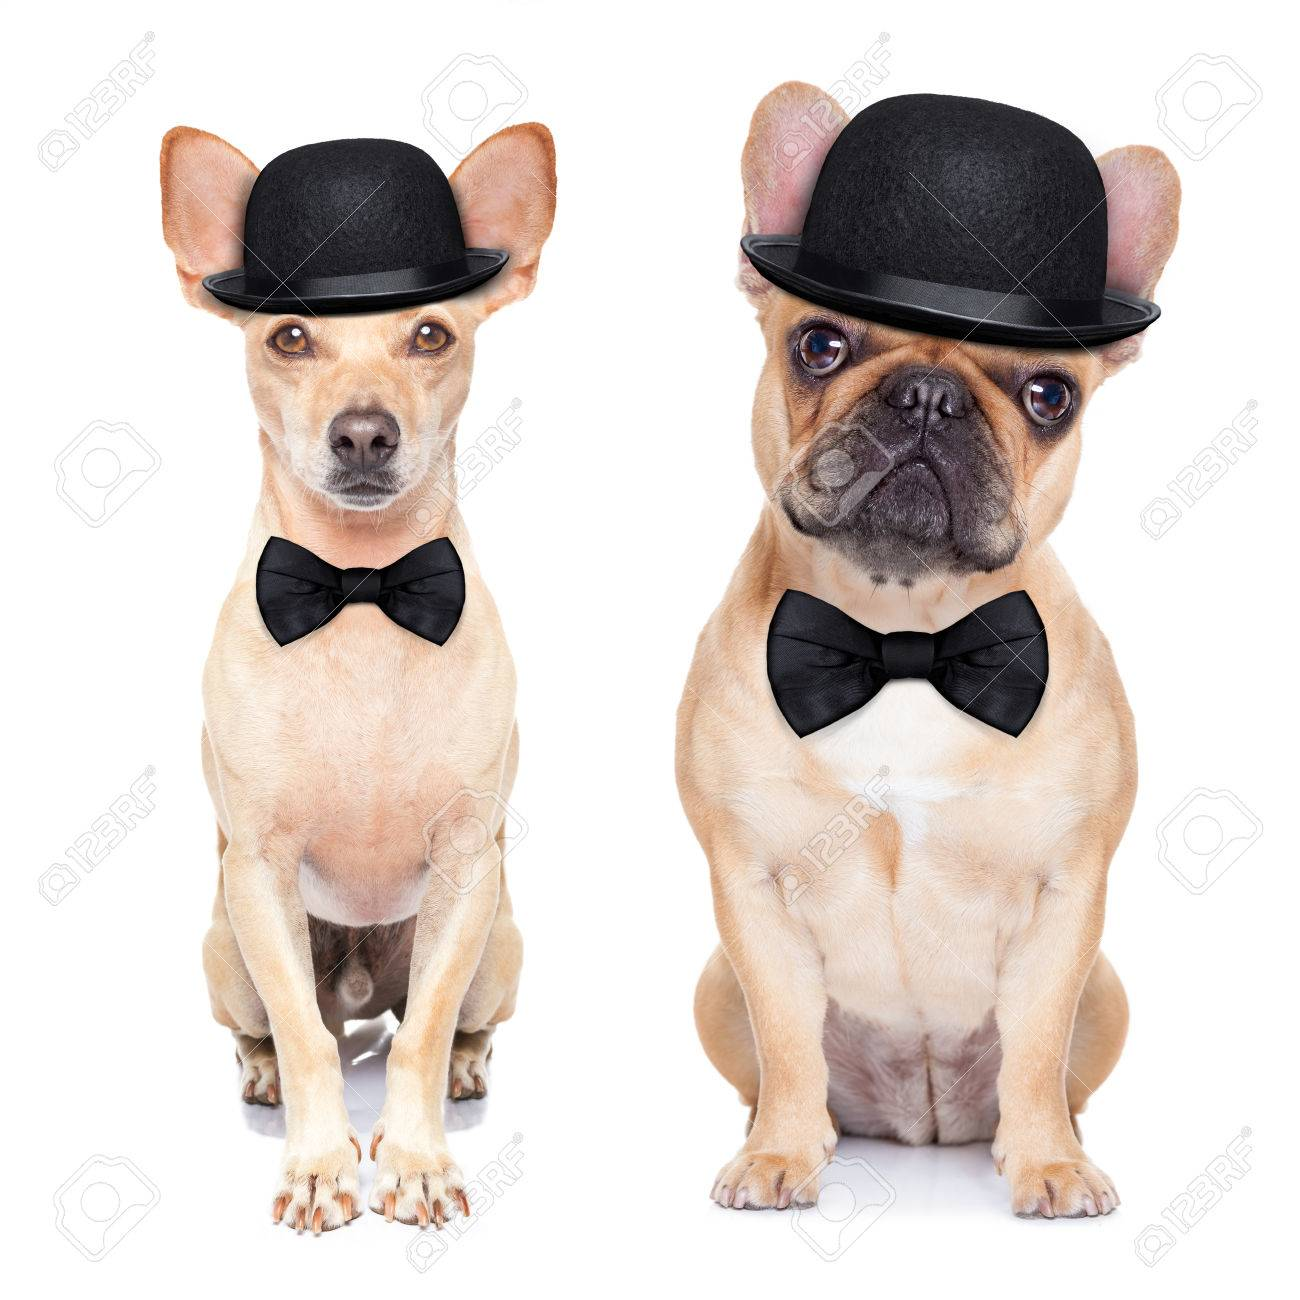 Dogs Wearing Mustaches Couple of Dogs Wearing a